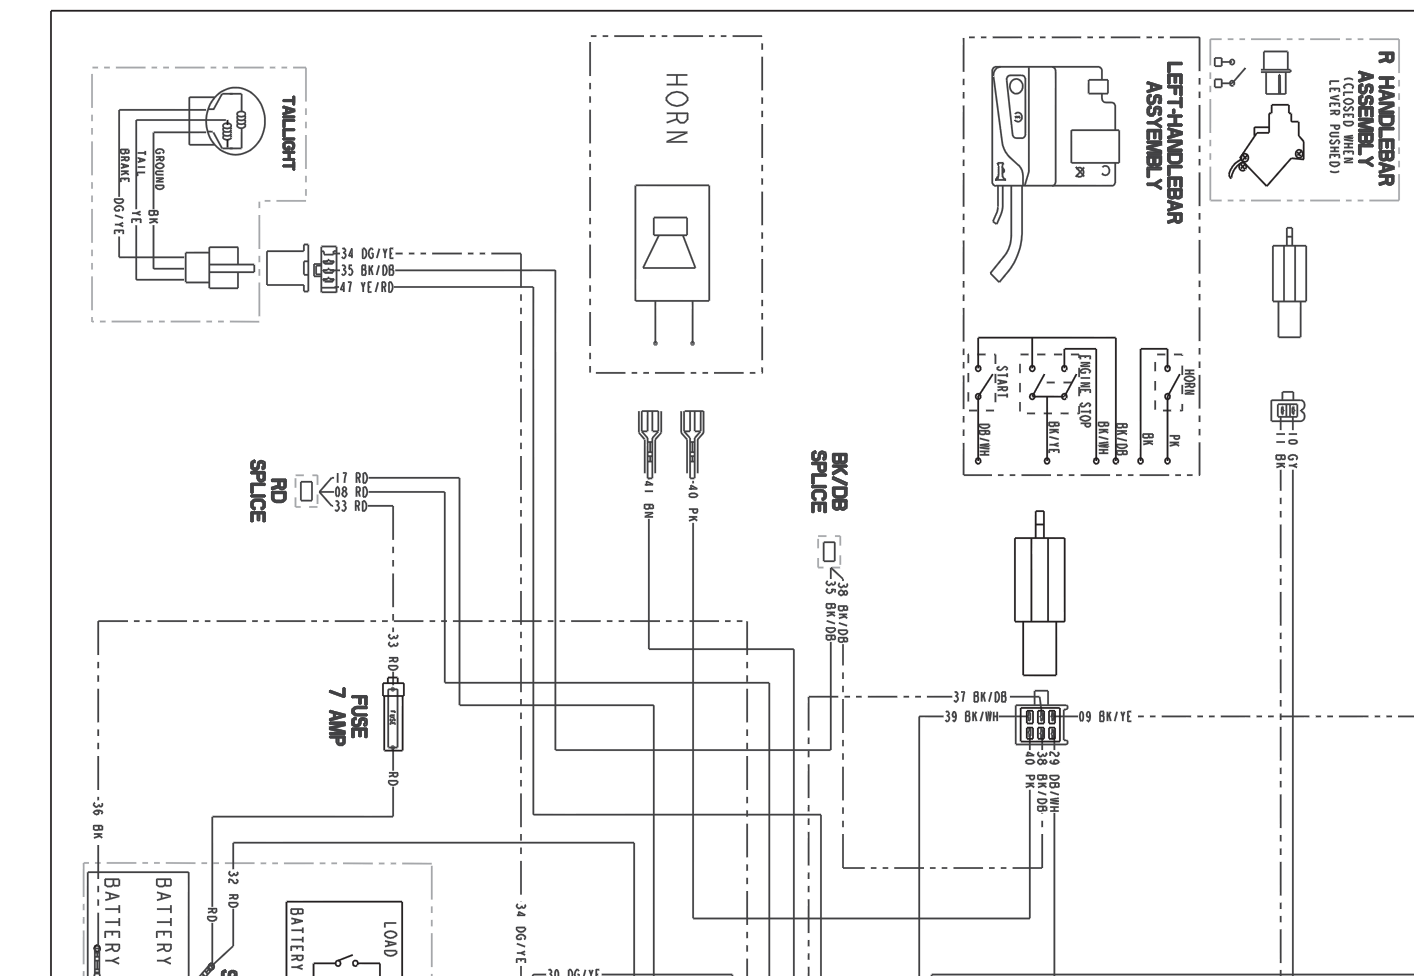 2005 330 polaris wiring diagram with Free 2003 Polaris Ranger 500 Wiring Diagram on 2003 New Holland Tc40 Tractor 1996869 as well Free 2003 Polaris Ranger 500 Wiring Diagram furthermore Watch also New Honda Gold Wing Gl1100 Wiring furthermore Polaris Trail Boss 350l Wiring Diagram.